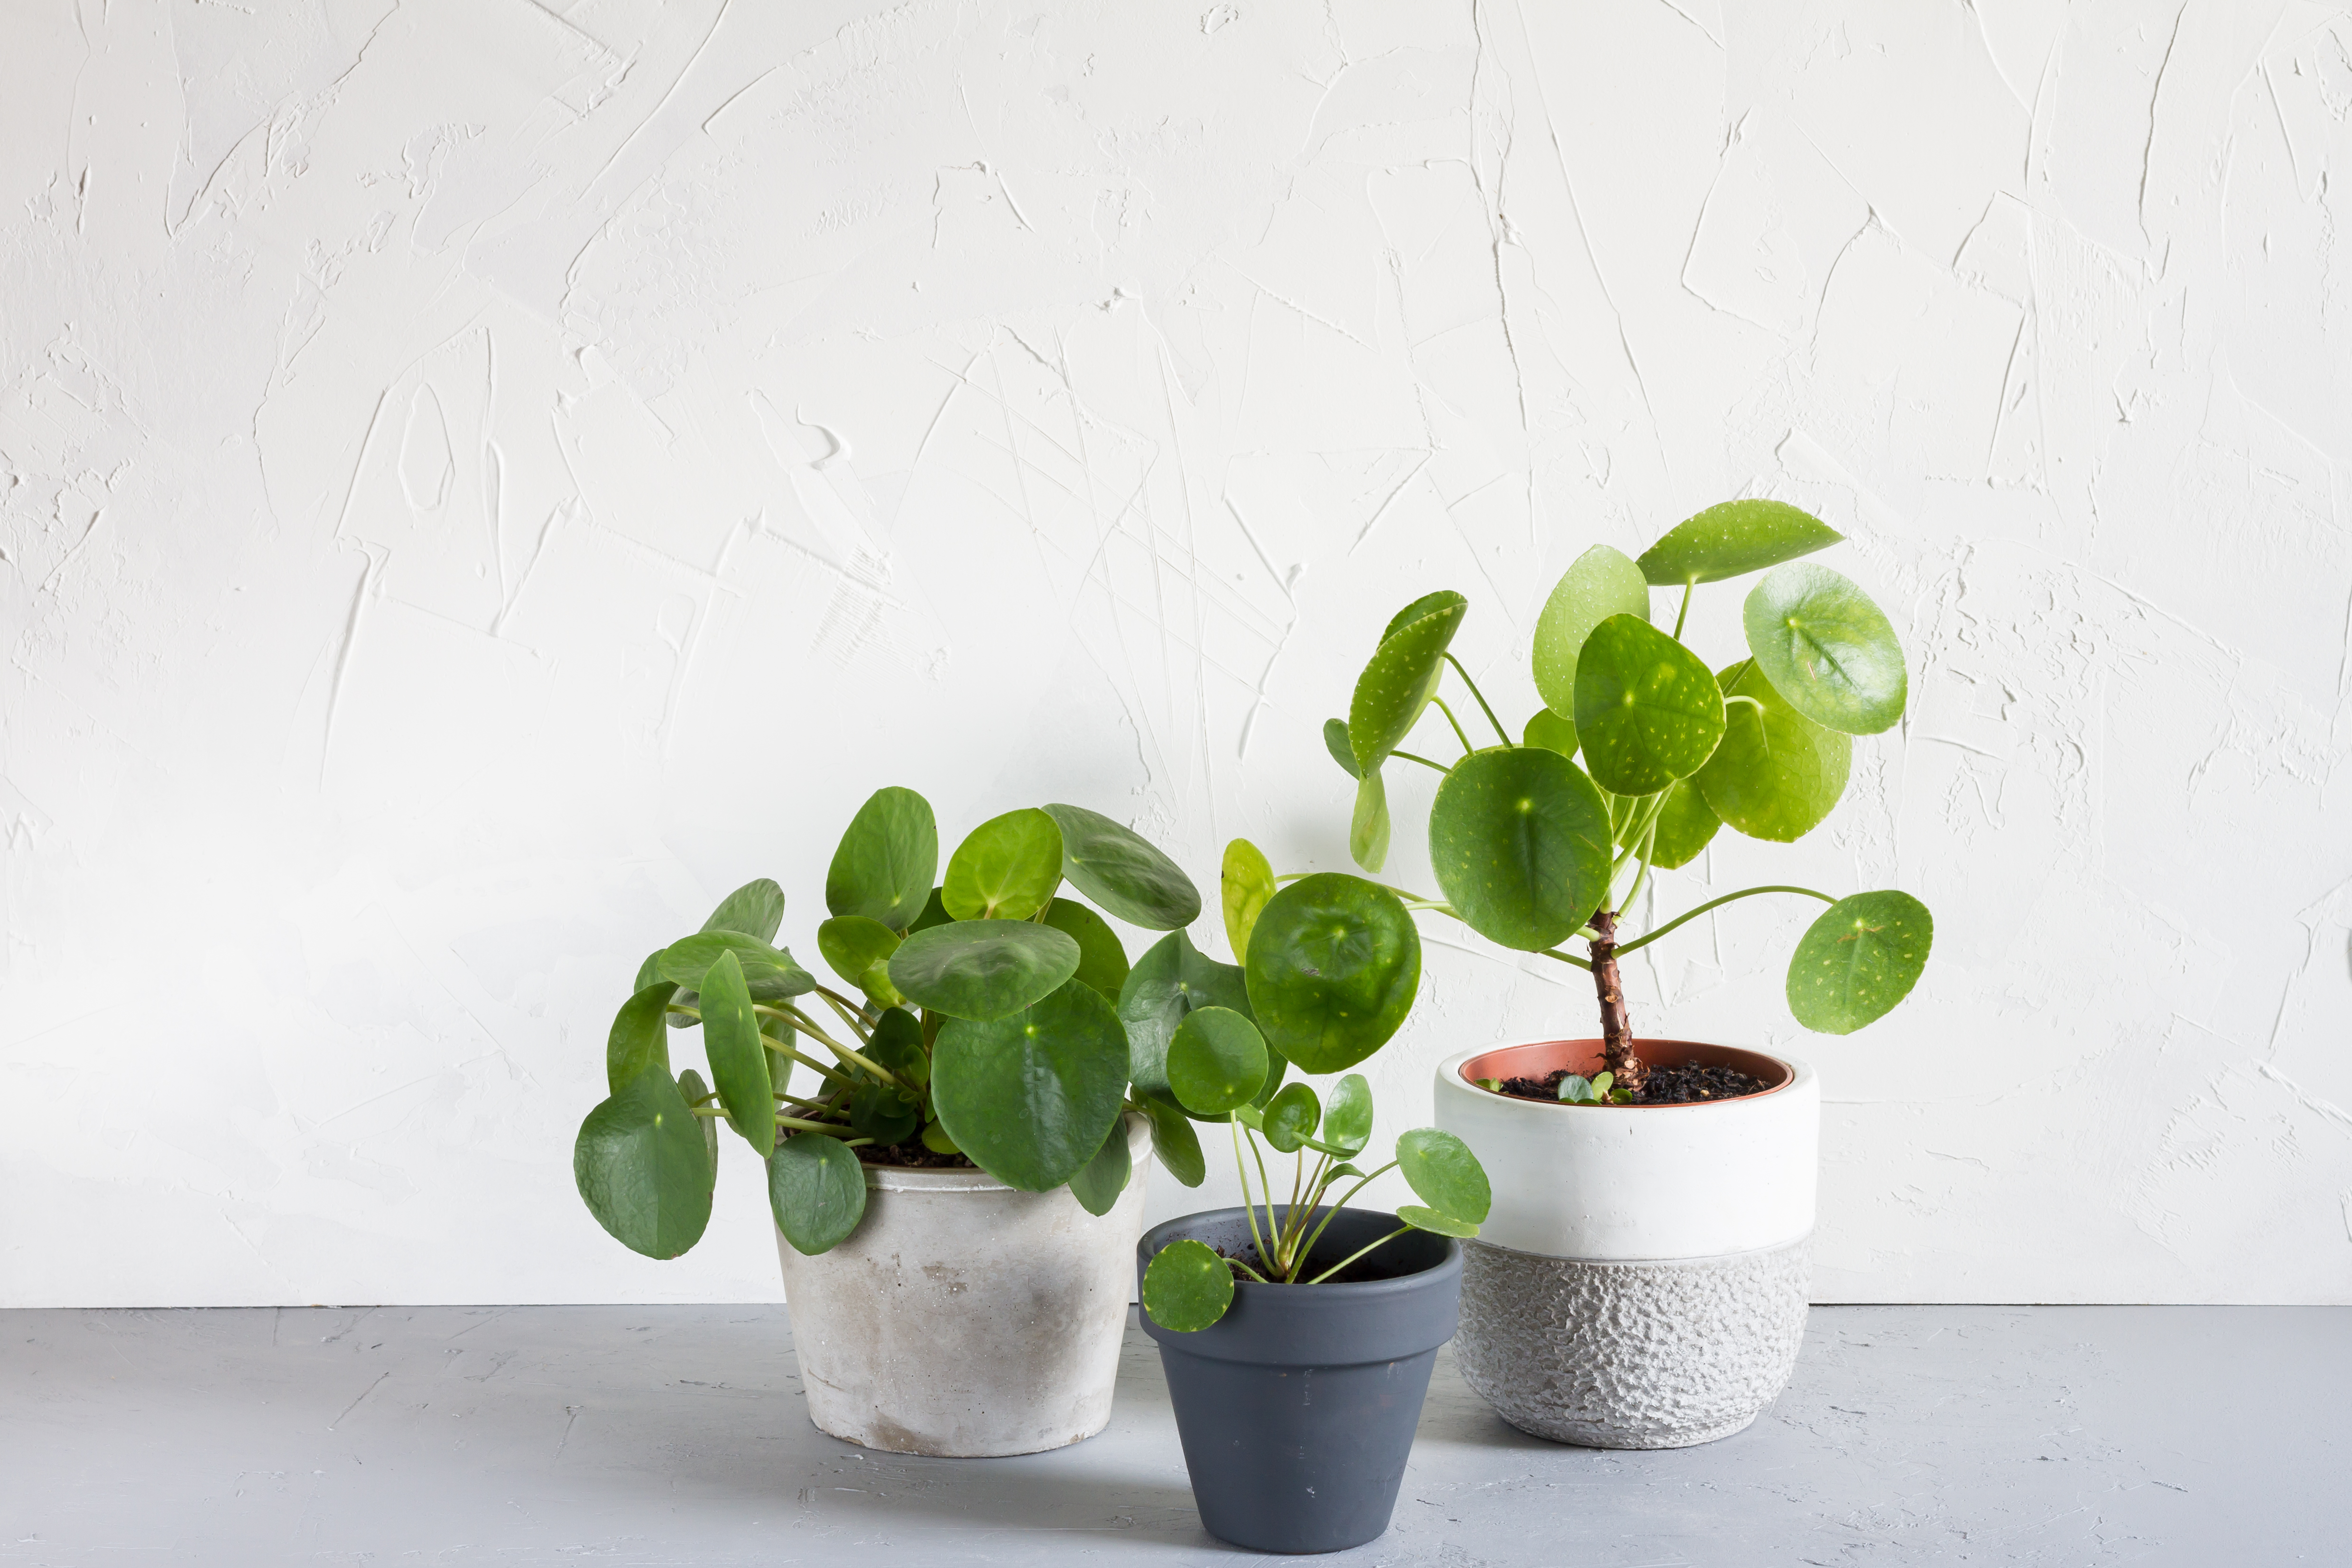 Chinese Money Plant Care How to Grow & Maintain Pilea